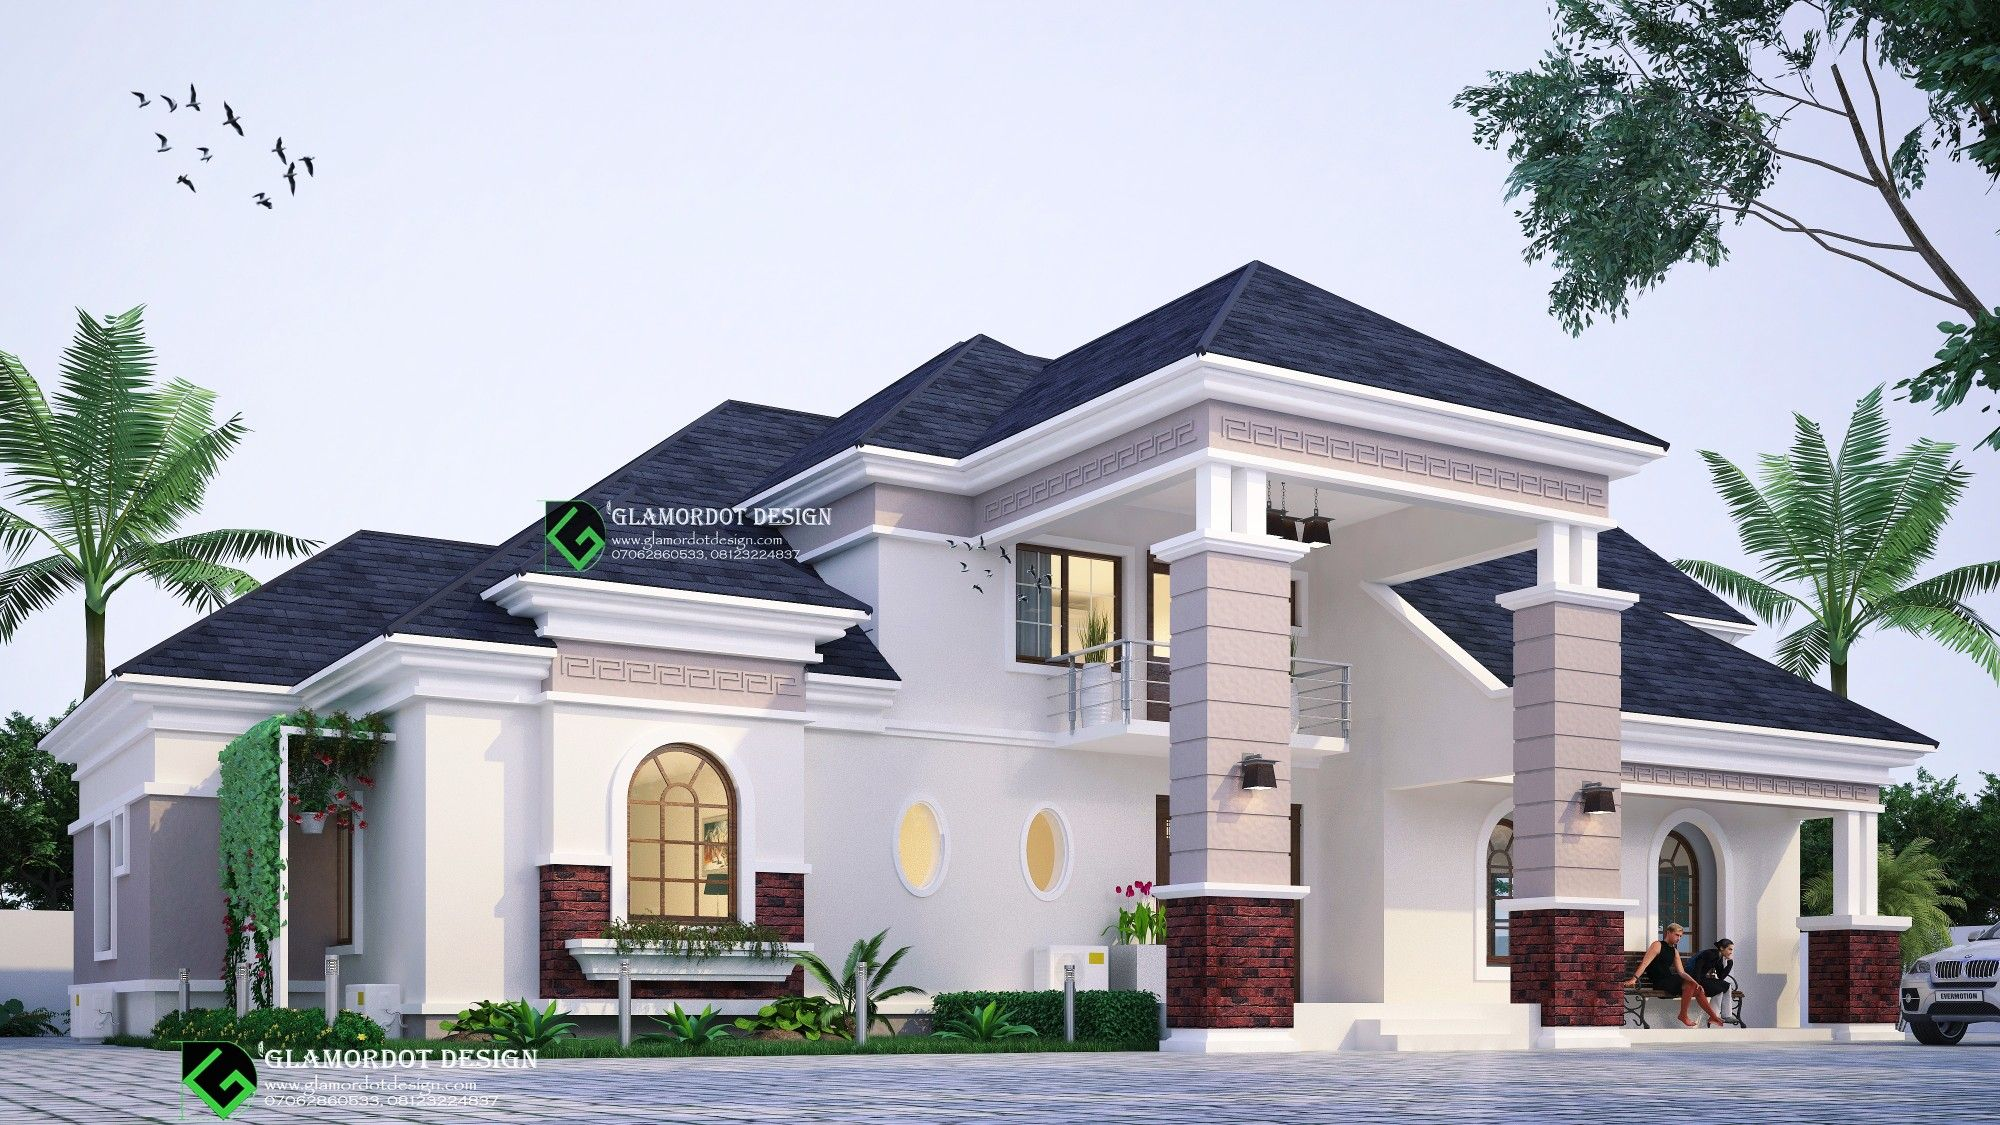 5 Bedroom Bungalow With A Penthouse Attic Space With 2 Balconies Located In Nigeria For Inquiries Bungalow House Design Bungalow Design House Plans Mansion